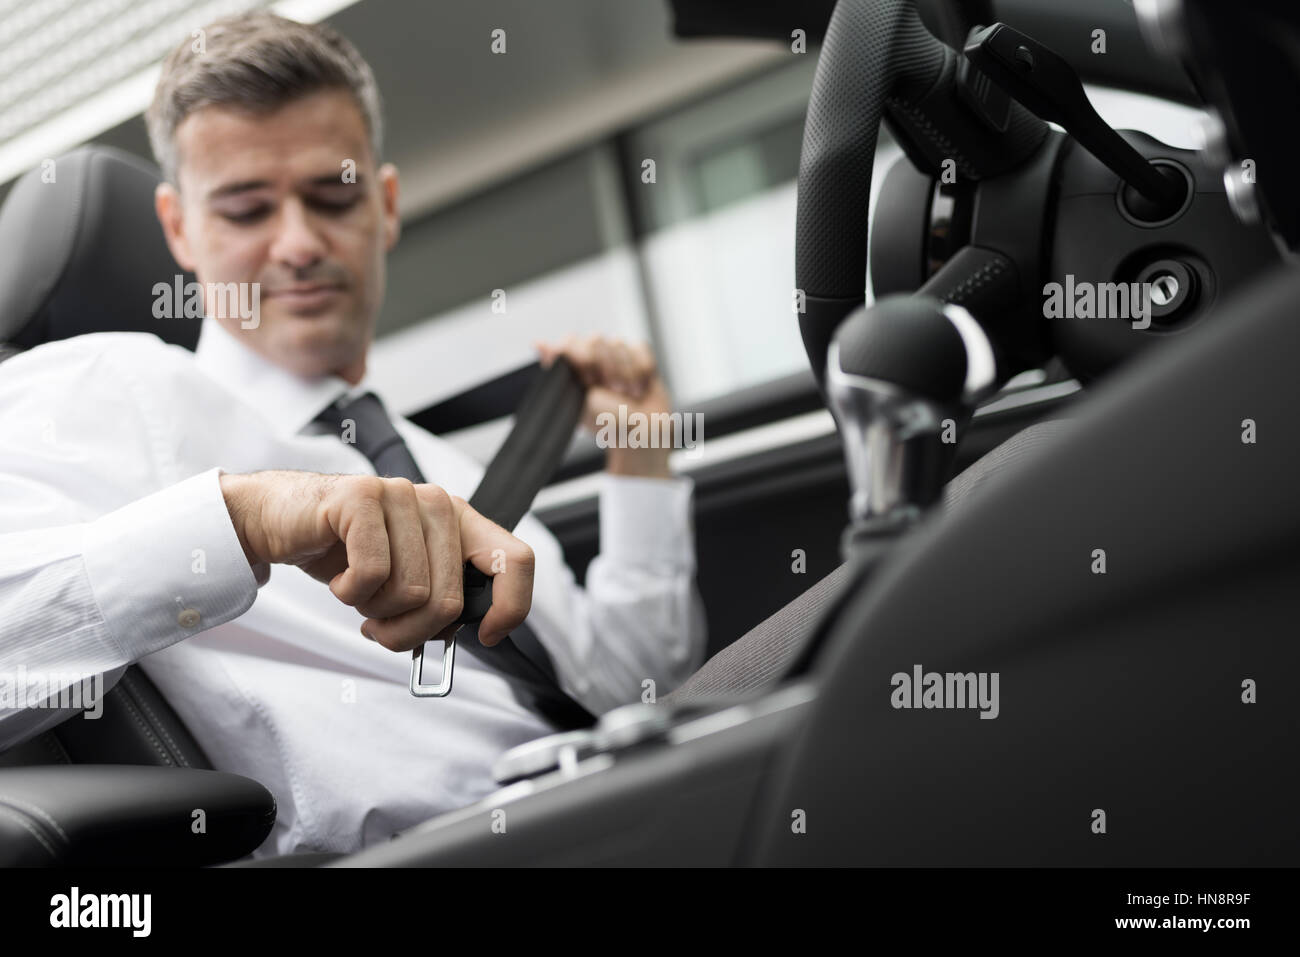 Businessman in his car fastening the seatbelt, safe driving concept - Stock Image